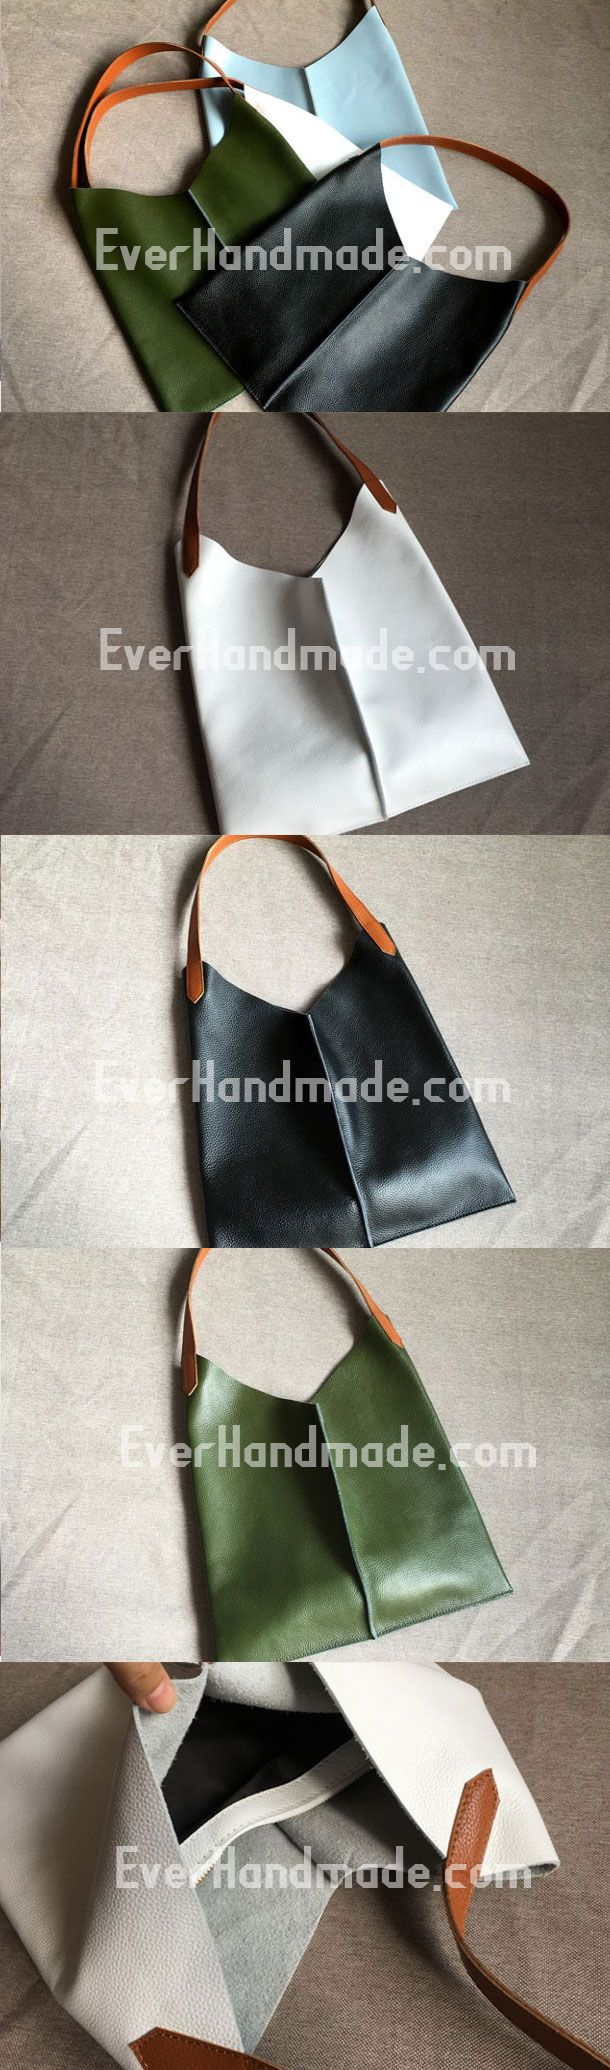 Genuine Leather Bag Handmade Vintage Leather Tote Bag